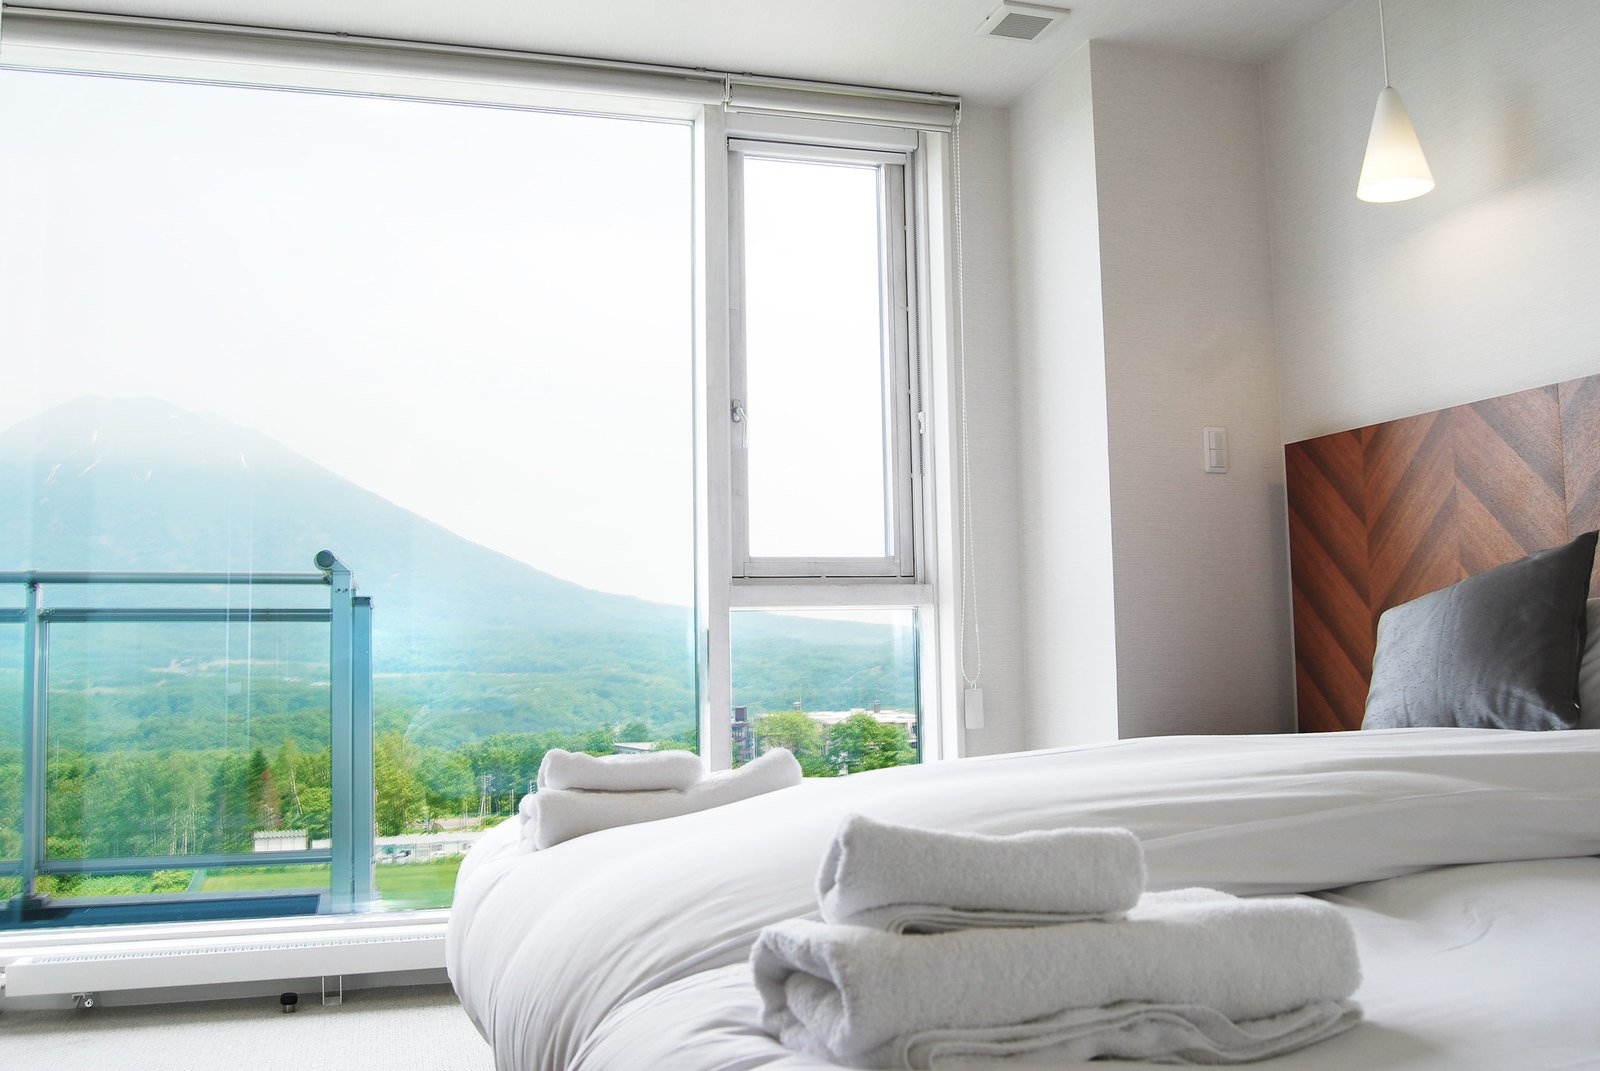 A 3 bedroom Premium apartment in Niseko Landmark View.